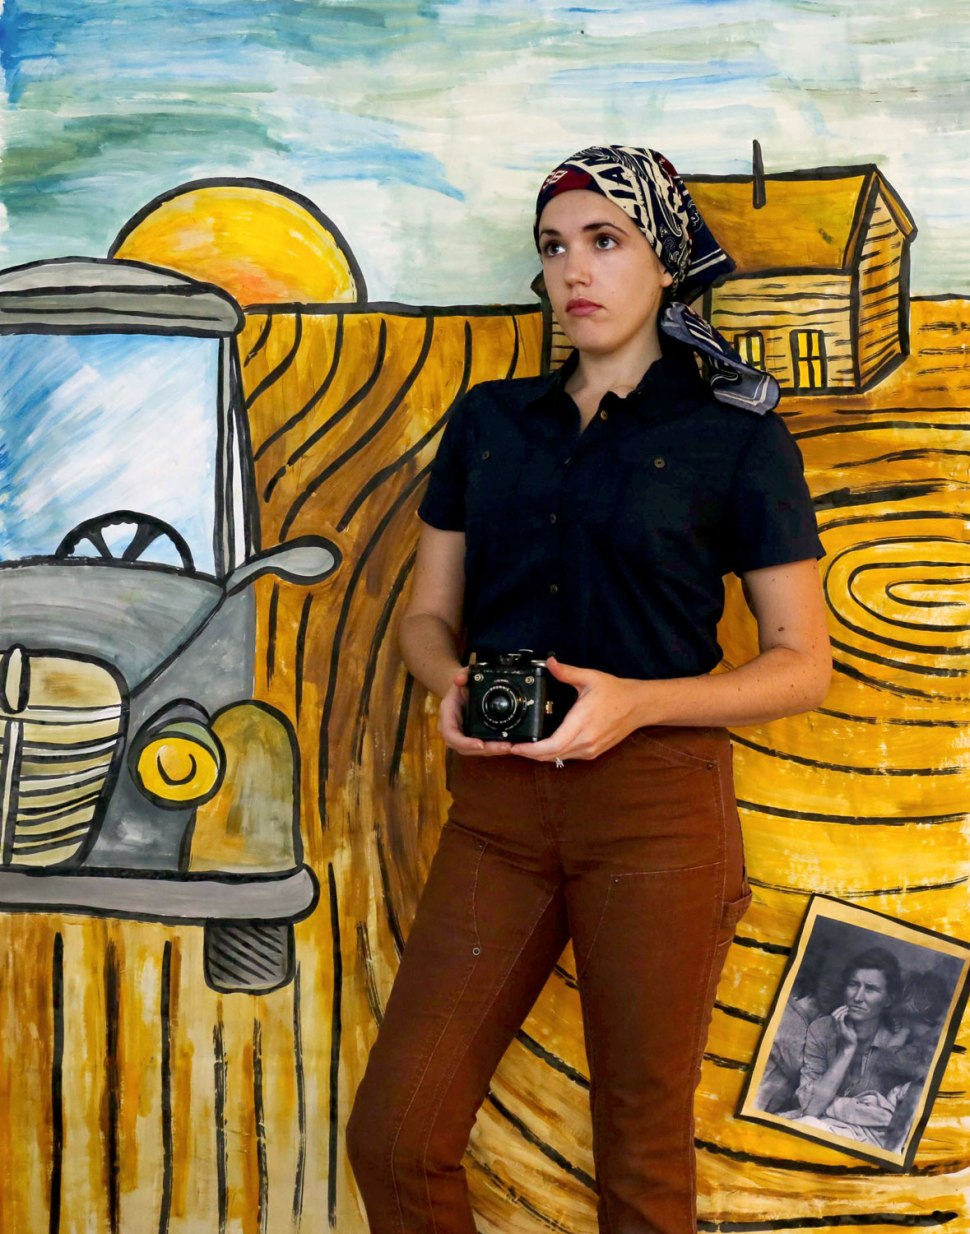 9 Empowering Halloween Costumes For Women / Crafted in Carhartt